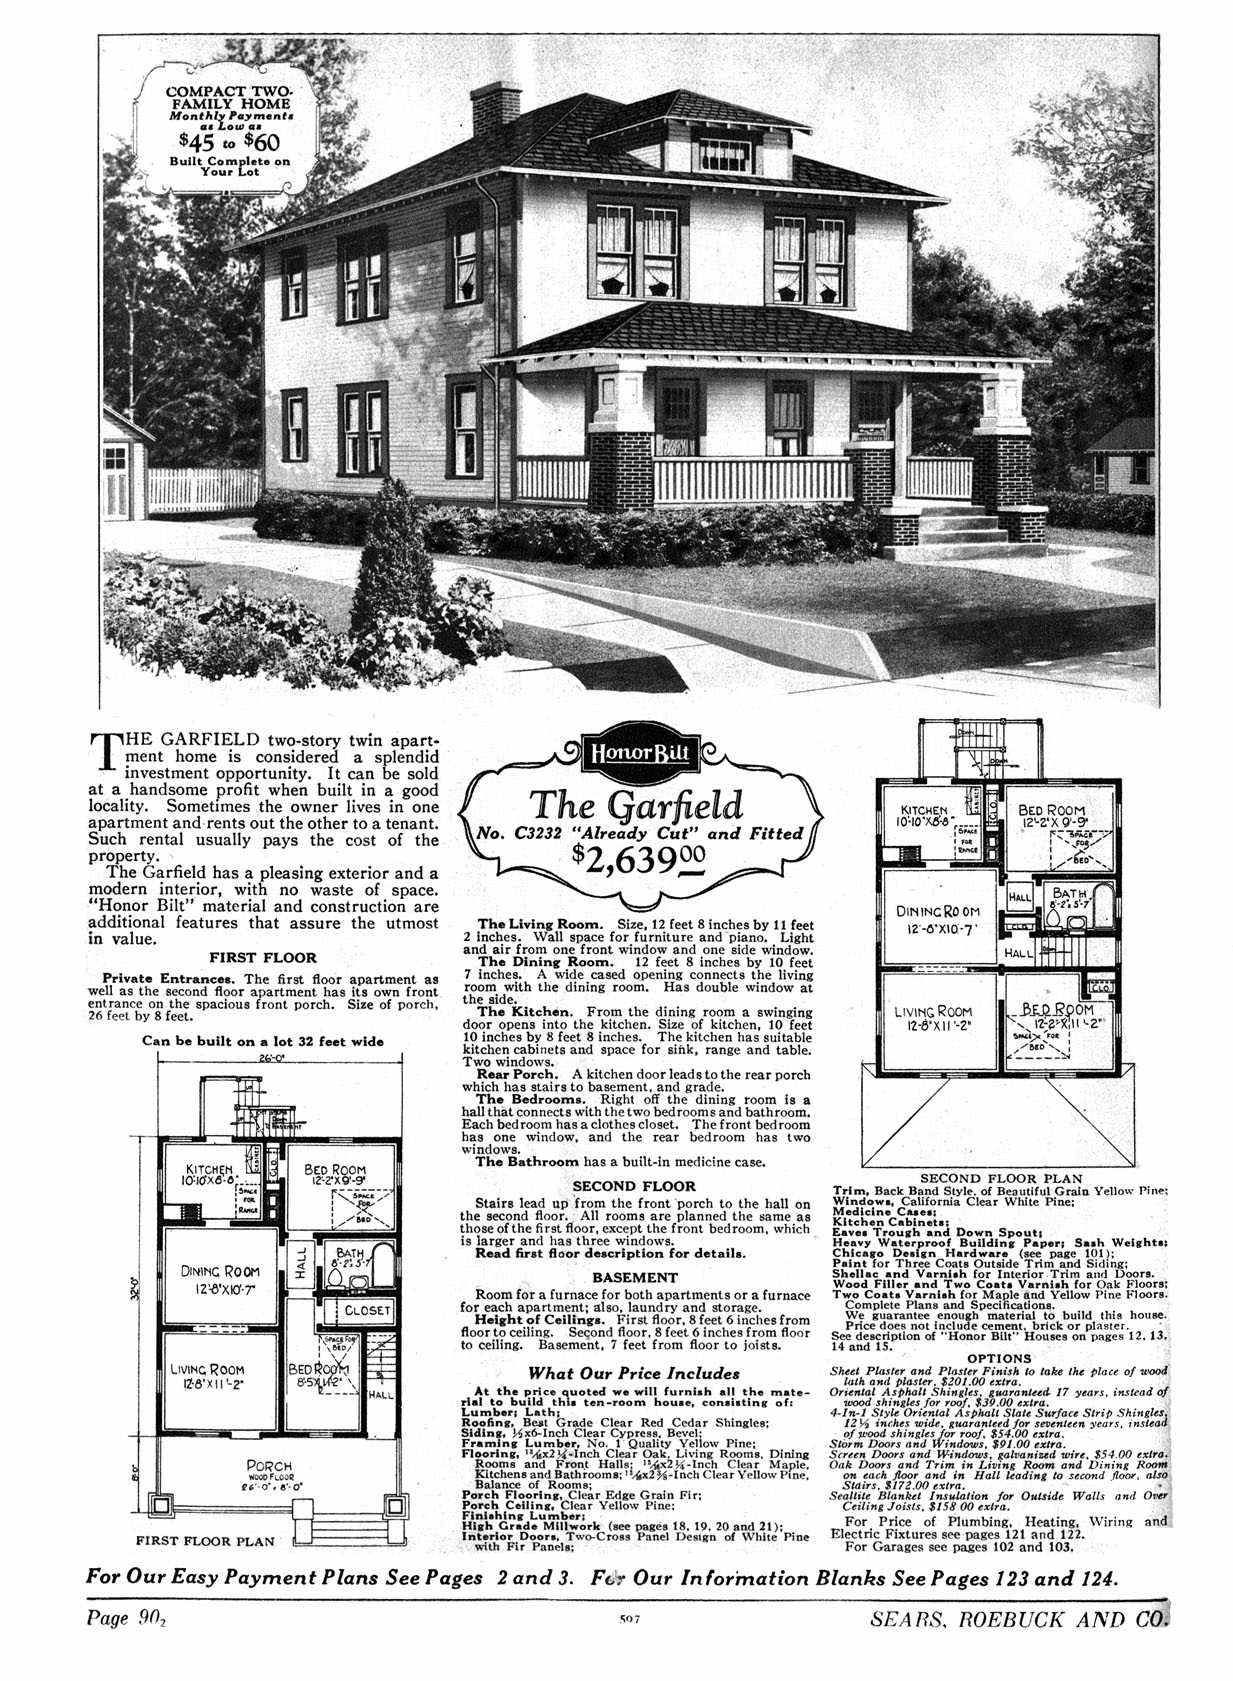 sears house the garfield model no p3232 2 599 to 2 758 craftsman style